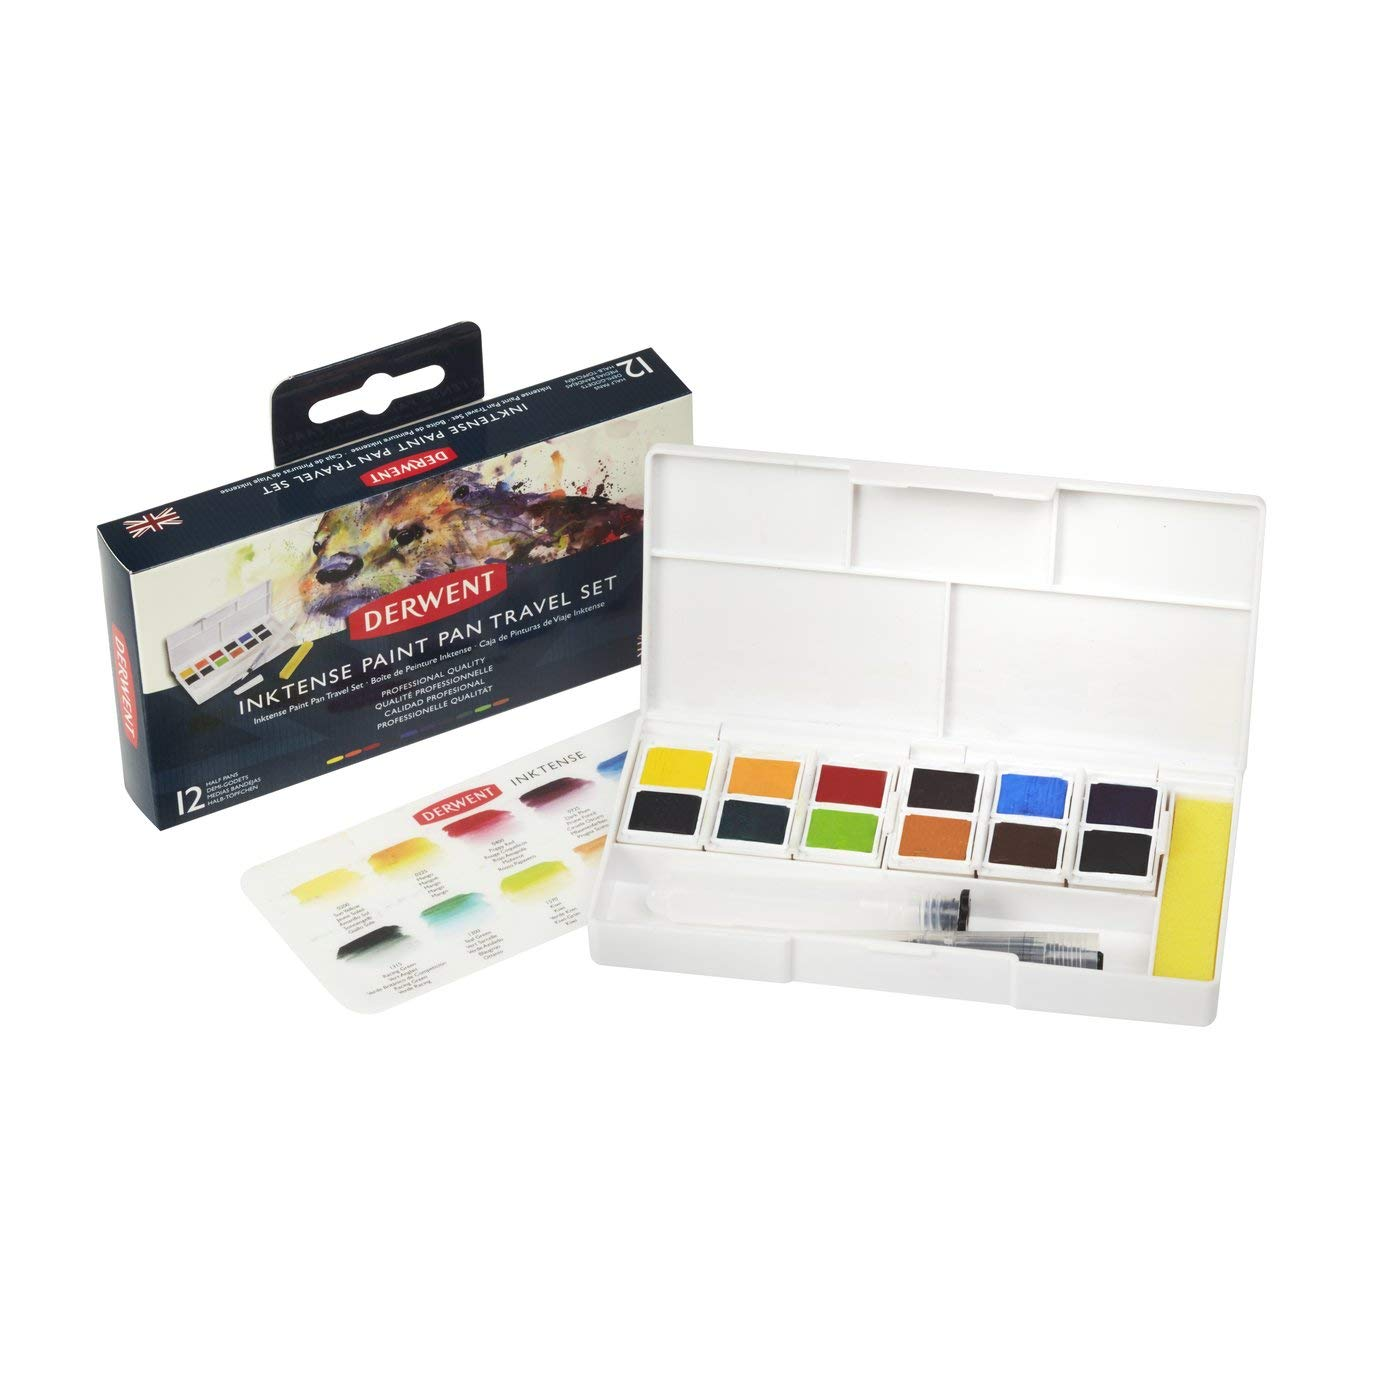 Derwent Inktense Paint Pan Travel Set, Includes 12 Colors and a waterbrush (2302637) MACPHERSON 2302636